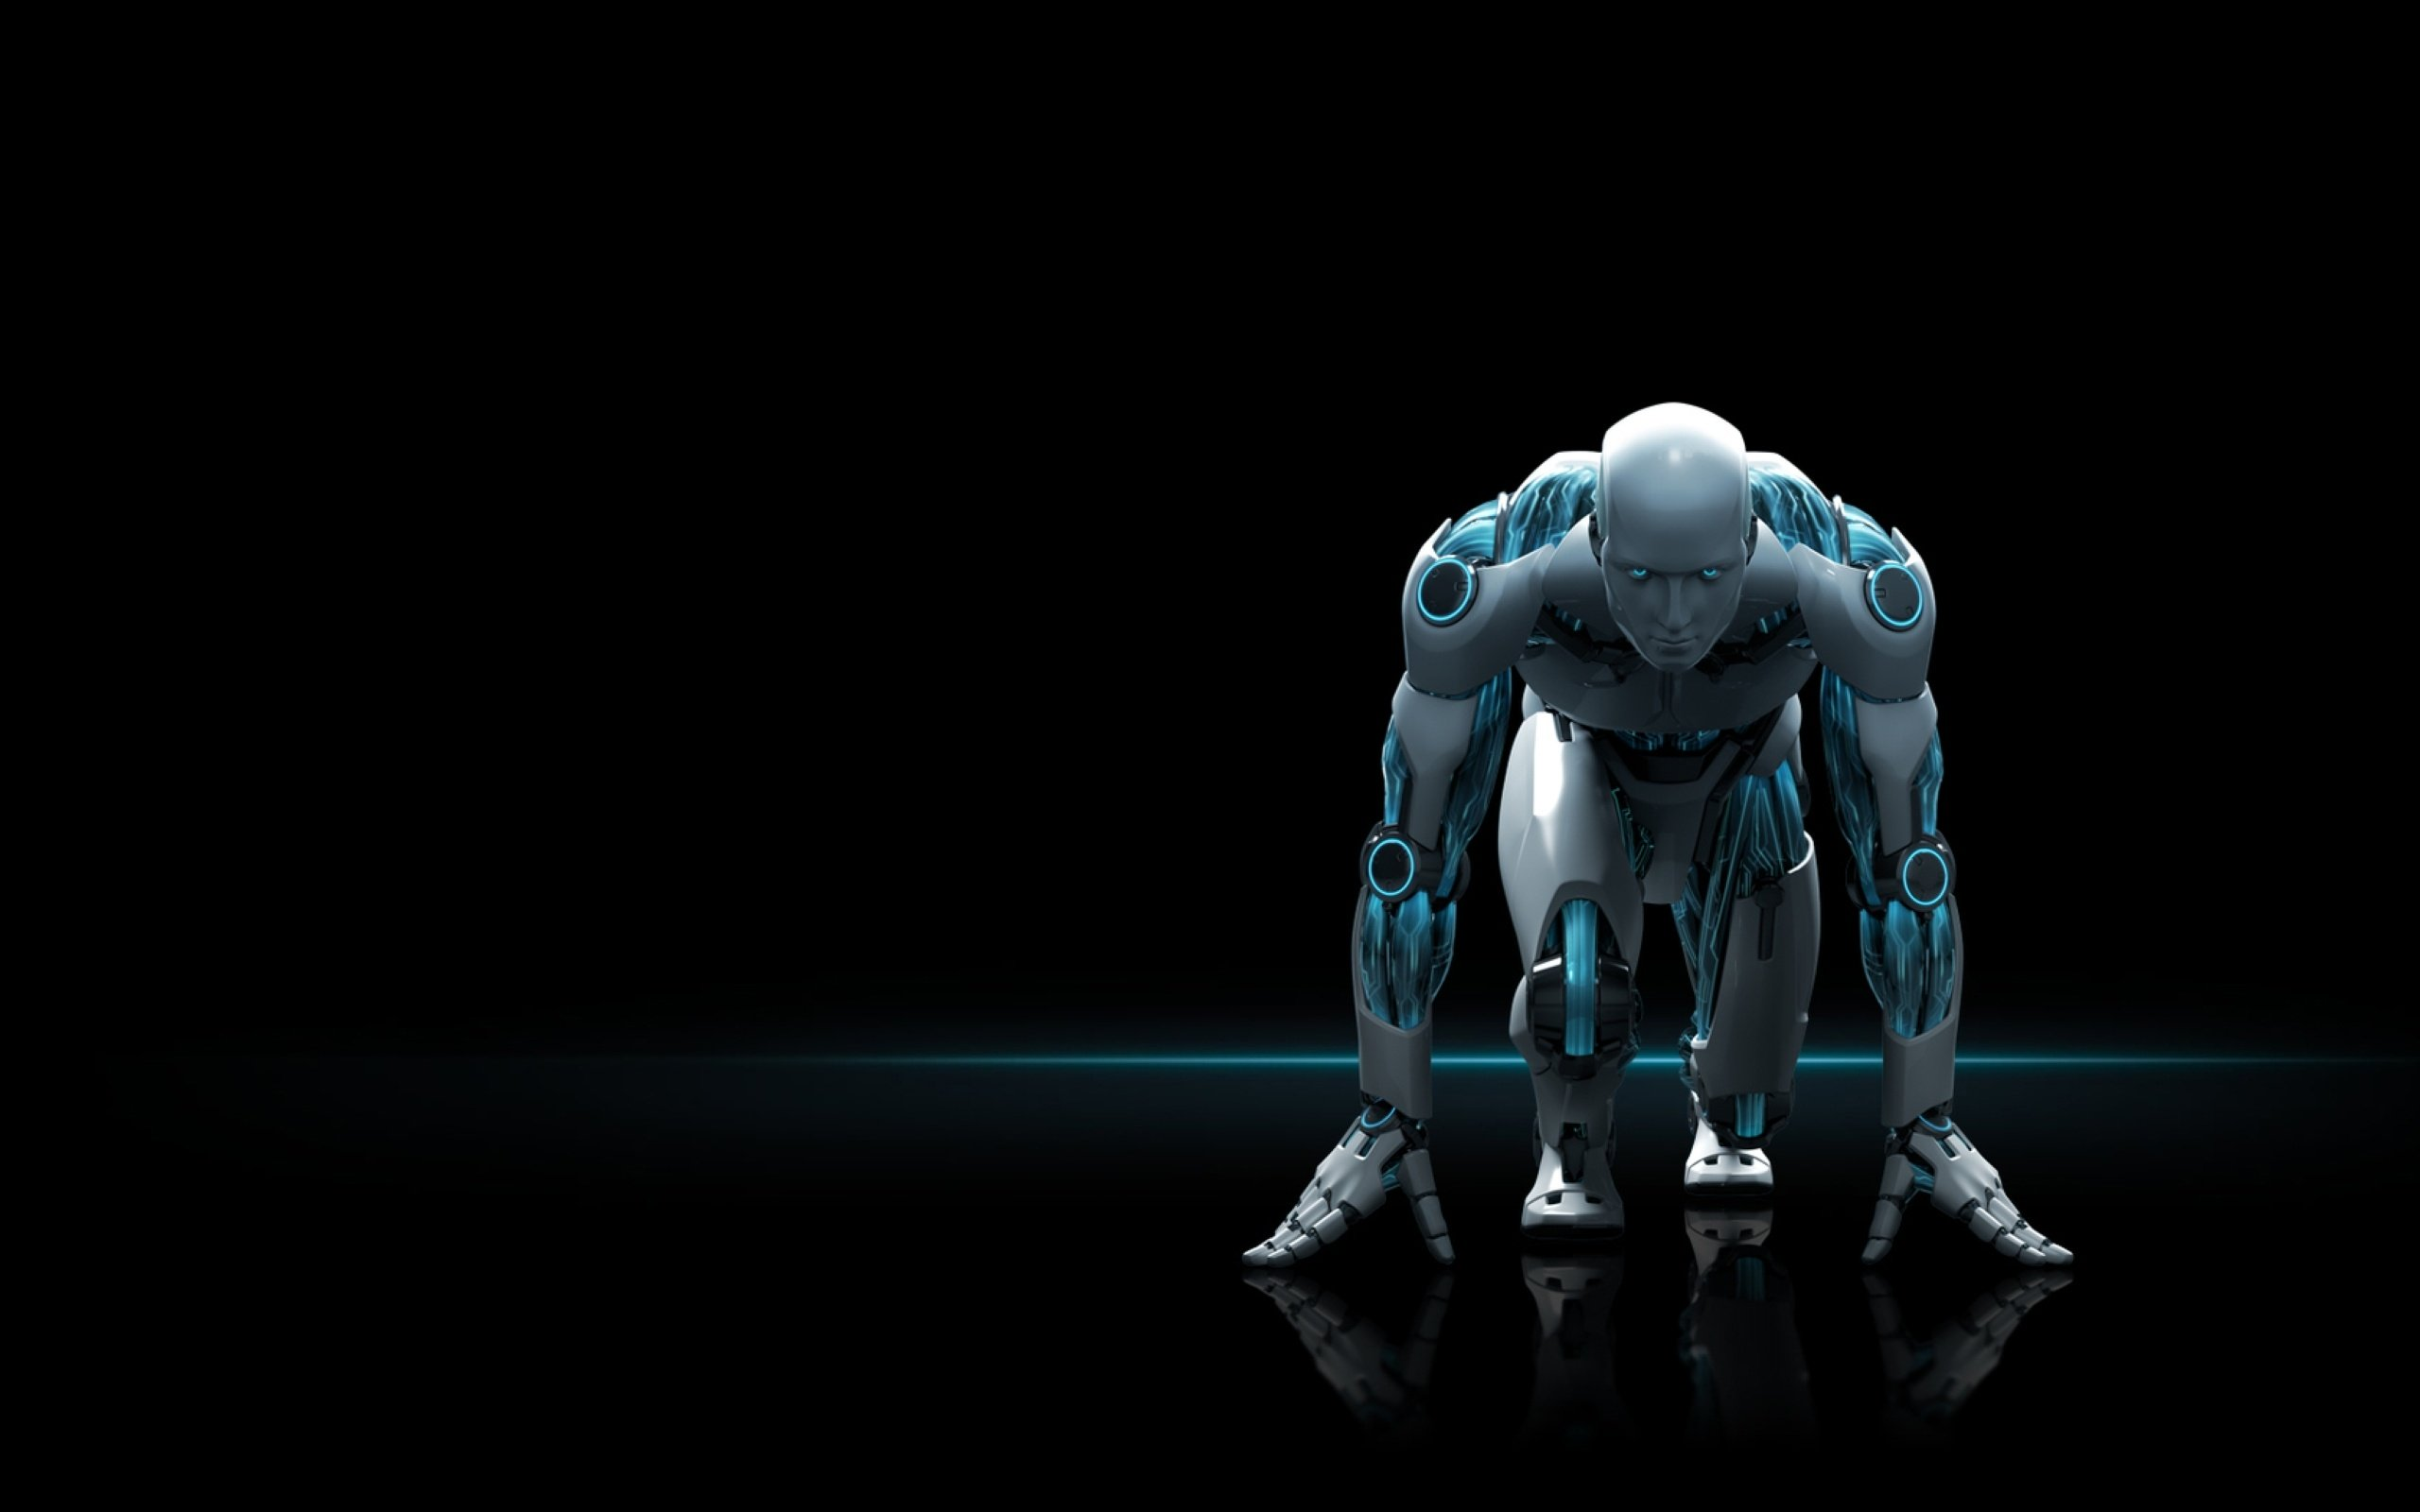 Sci Fi Robot Wallpaper HD 17 High Resolution Wallpaper Full Size 2560x1600